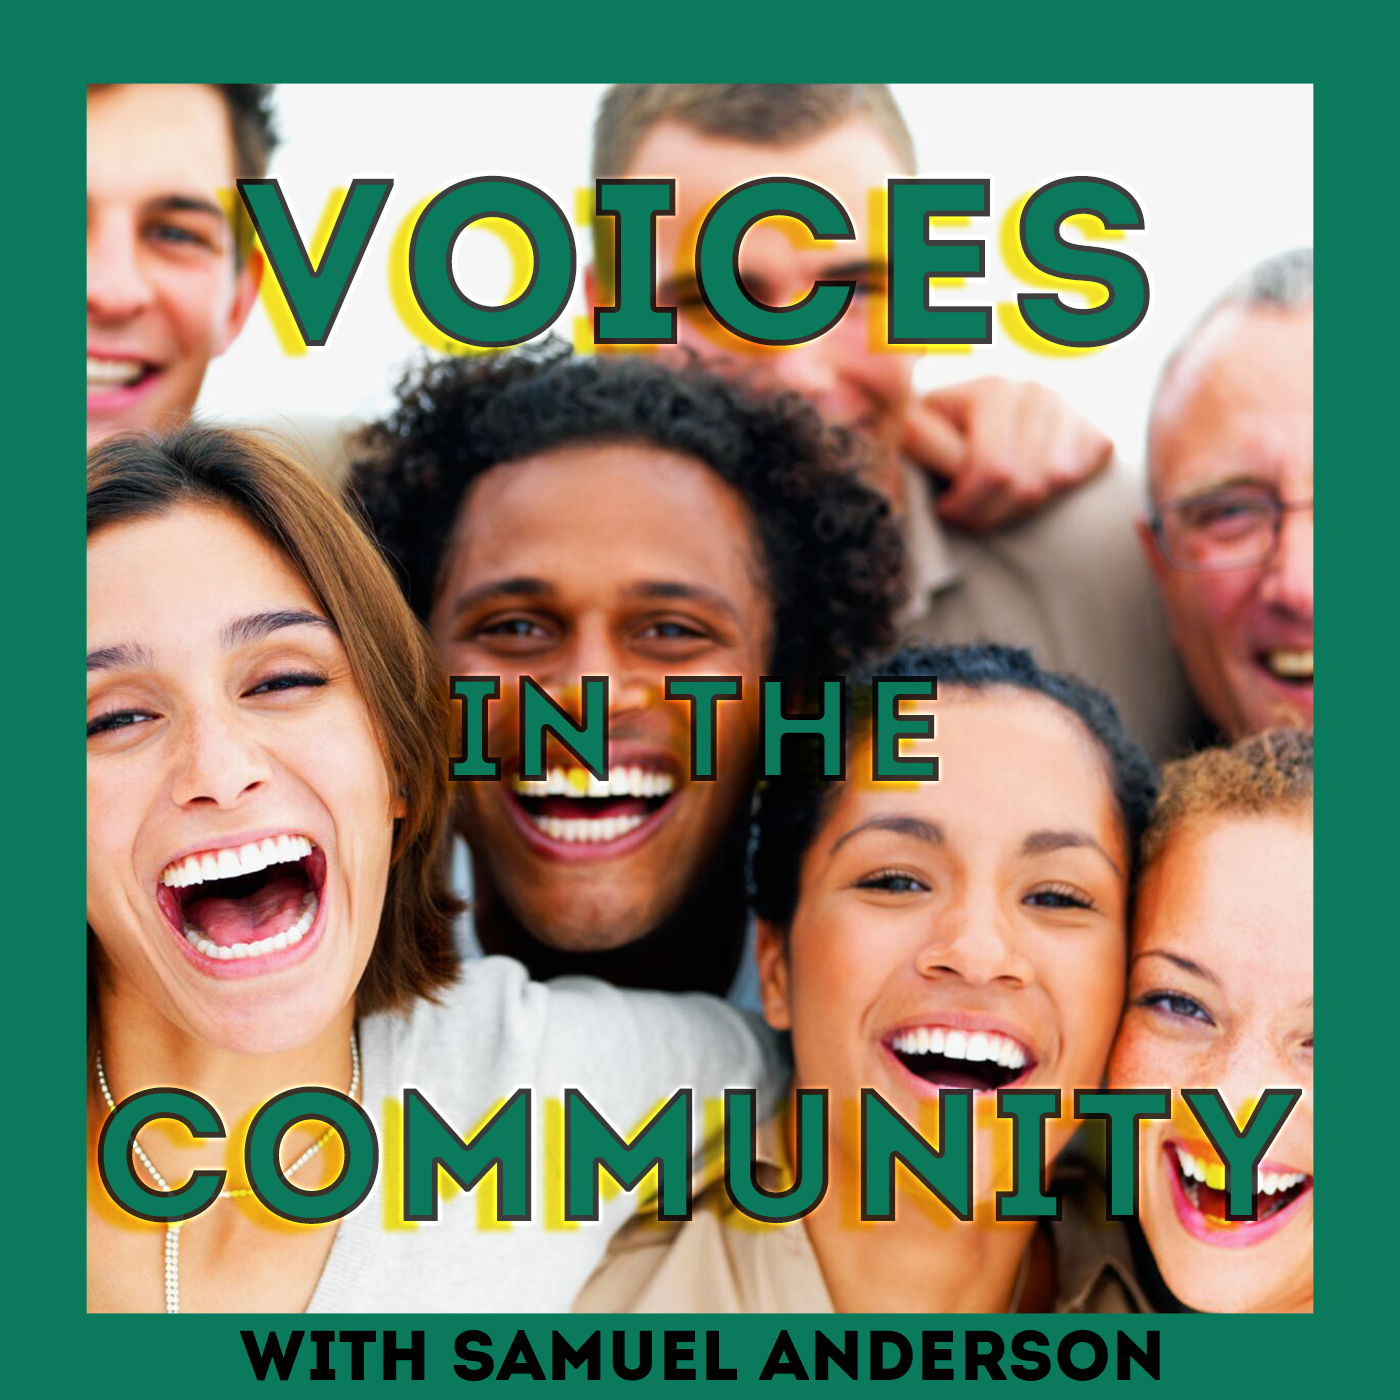 Voices in the Community